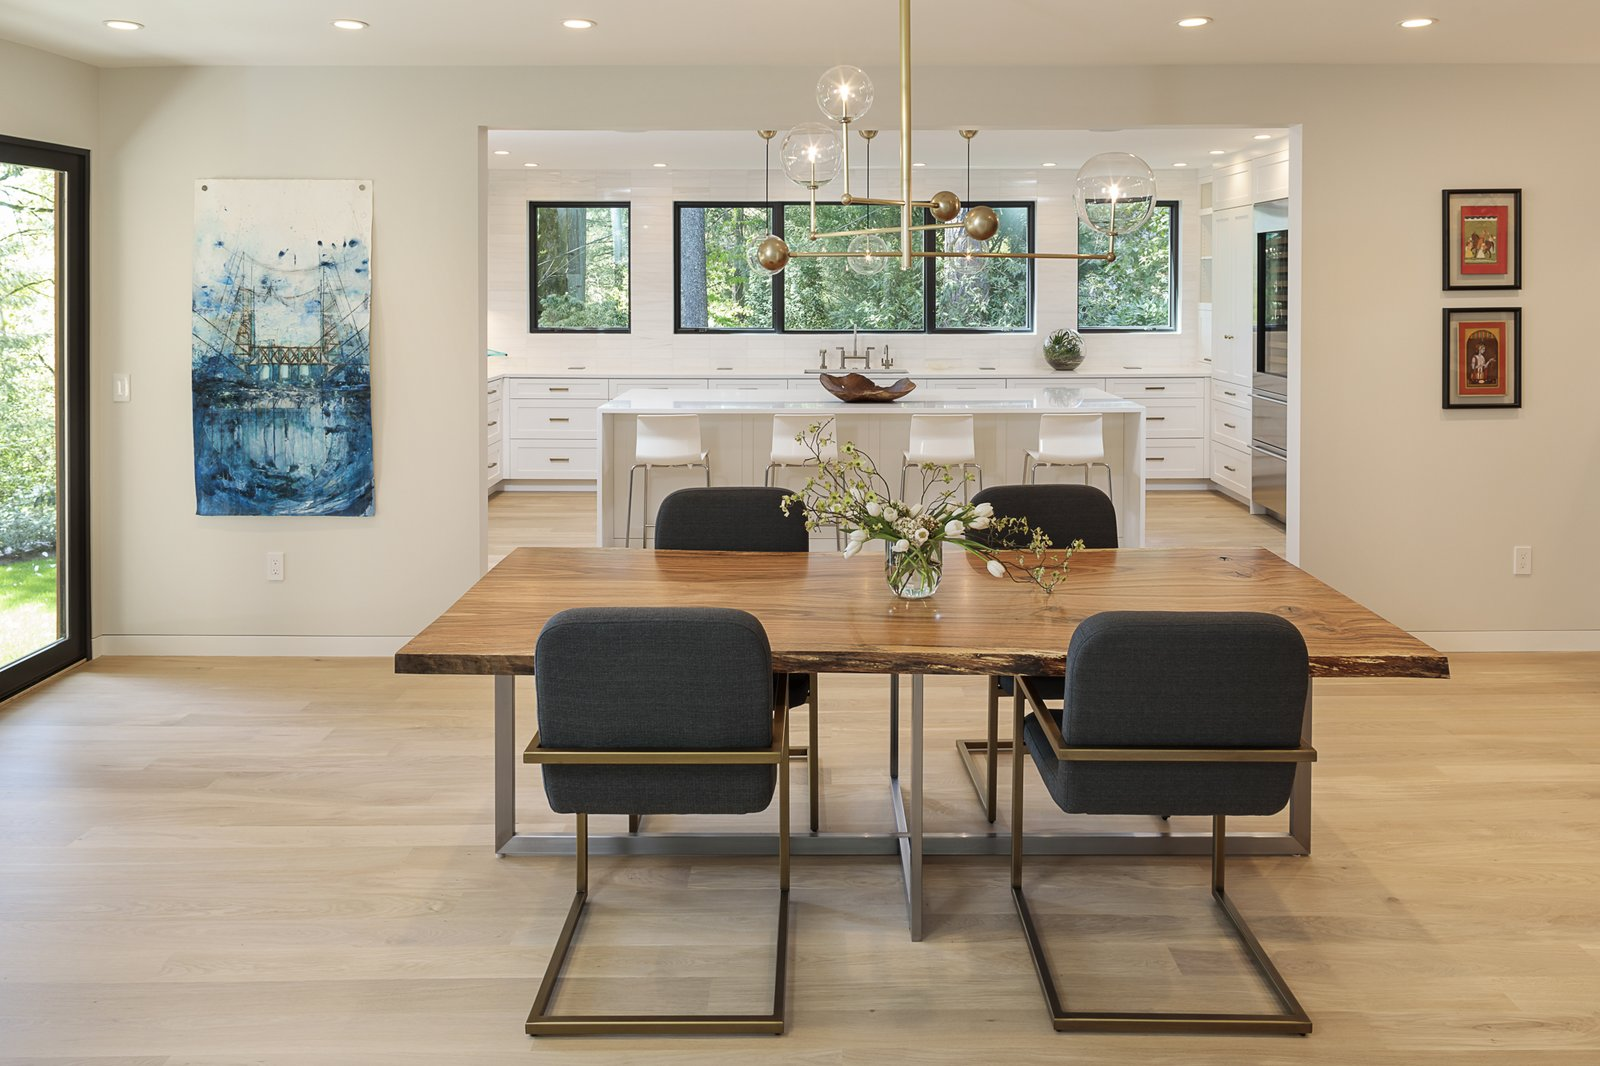 Dining Room, Table, Pendant Lighting, Chair, Light Hardwood Floor, Recessed Lighting, and Stools Silver opened the kitchen to the dining room, creating the sense of one big space with a seamless flow. He also inserted sliding doors to an exterior patio.   Photo 12 of 24 in An Iconic Portland Midcentury Is Seeking a New Owner For $1.6M